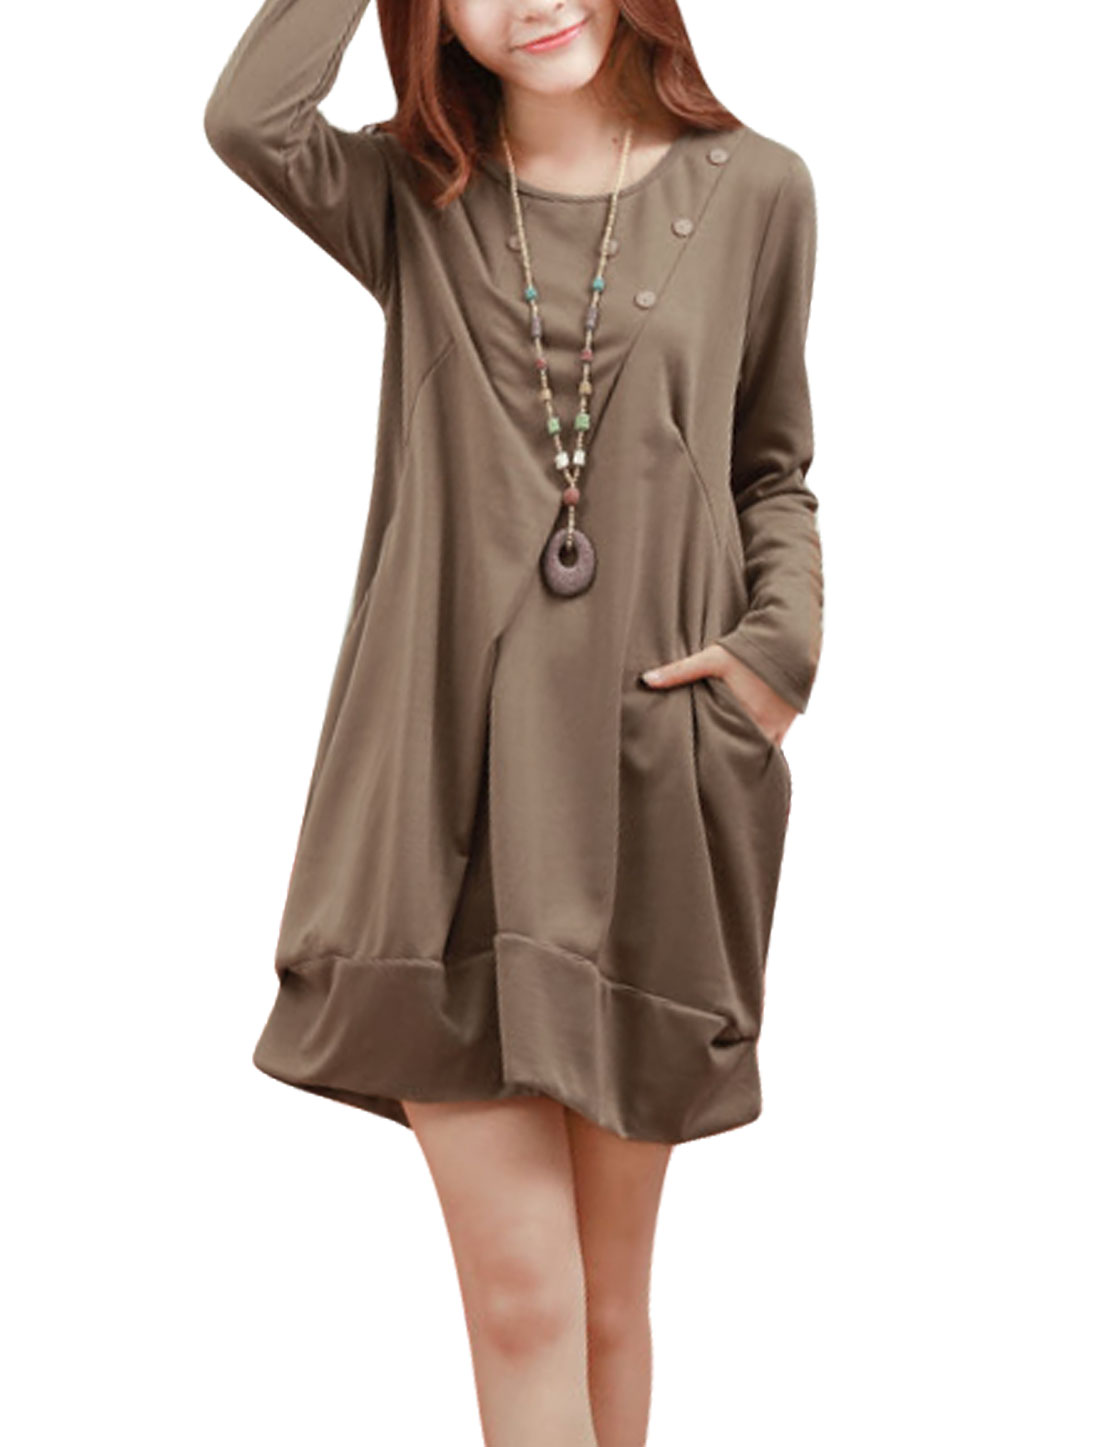 Ladies Button Decor Front Long Sleeves Light Coffee Short Dress M